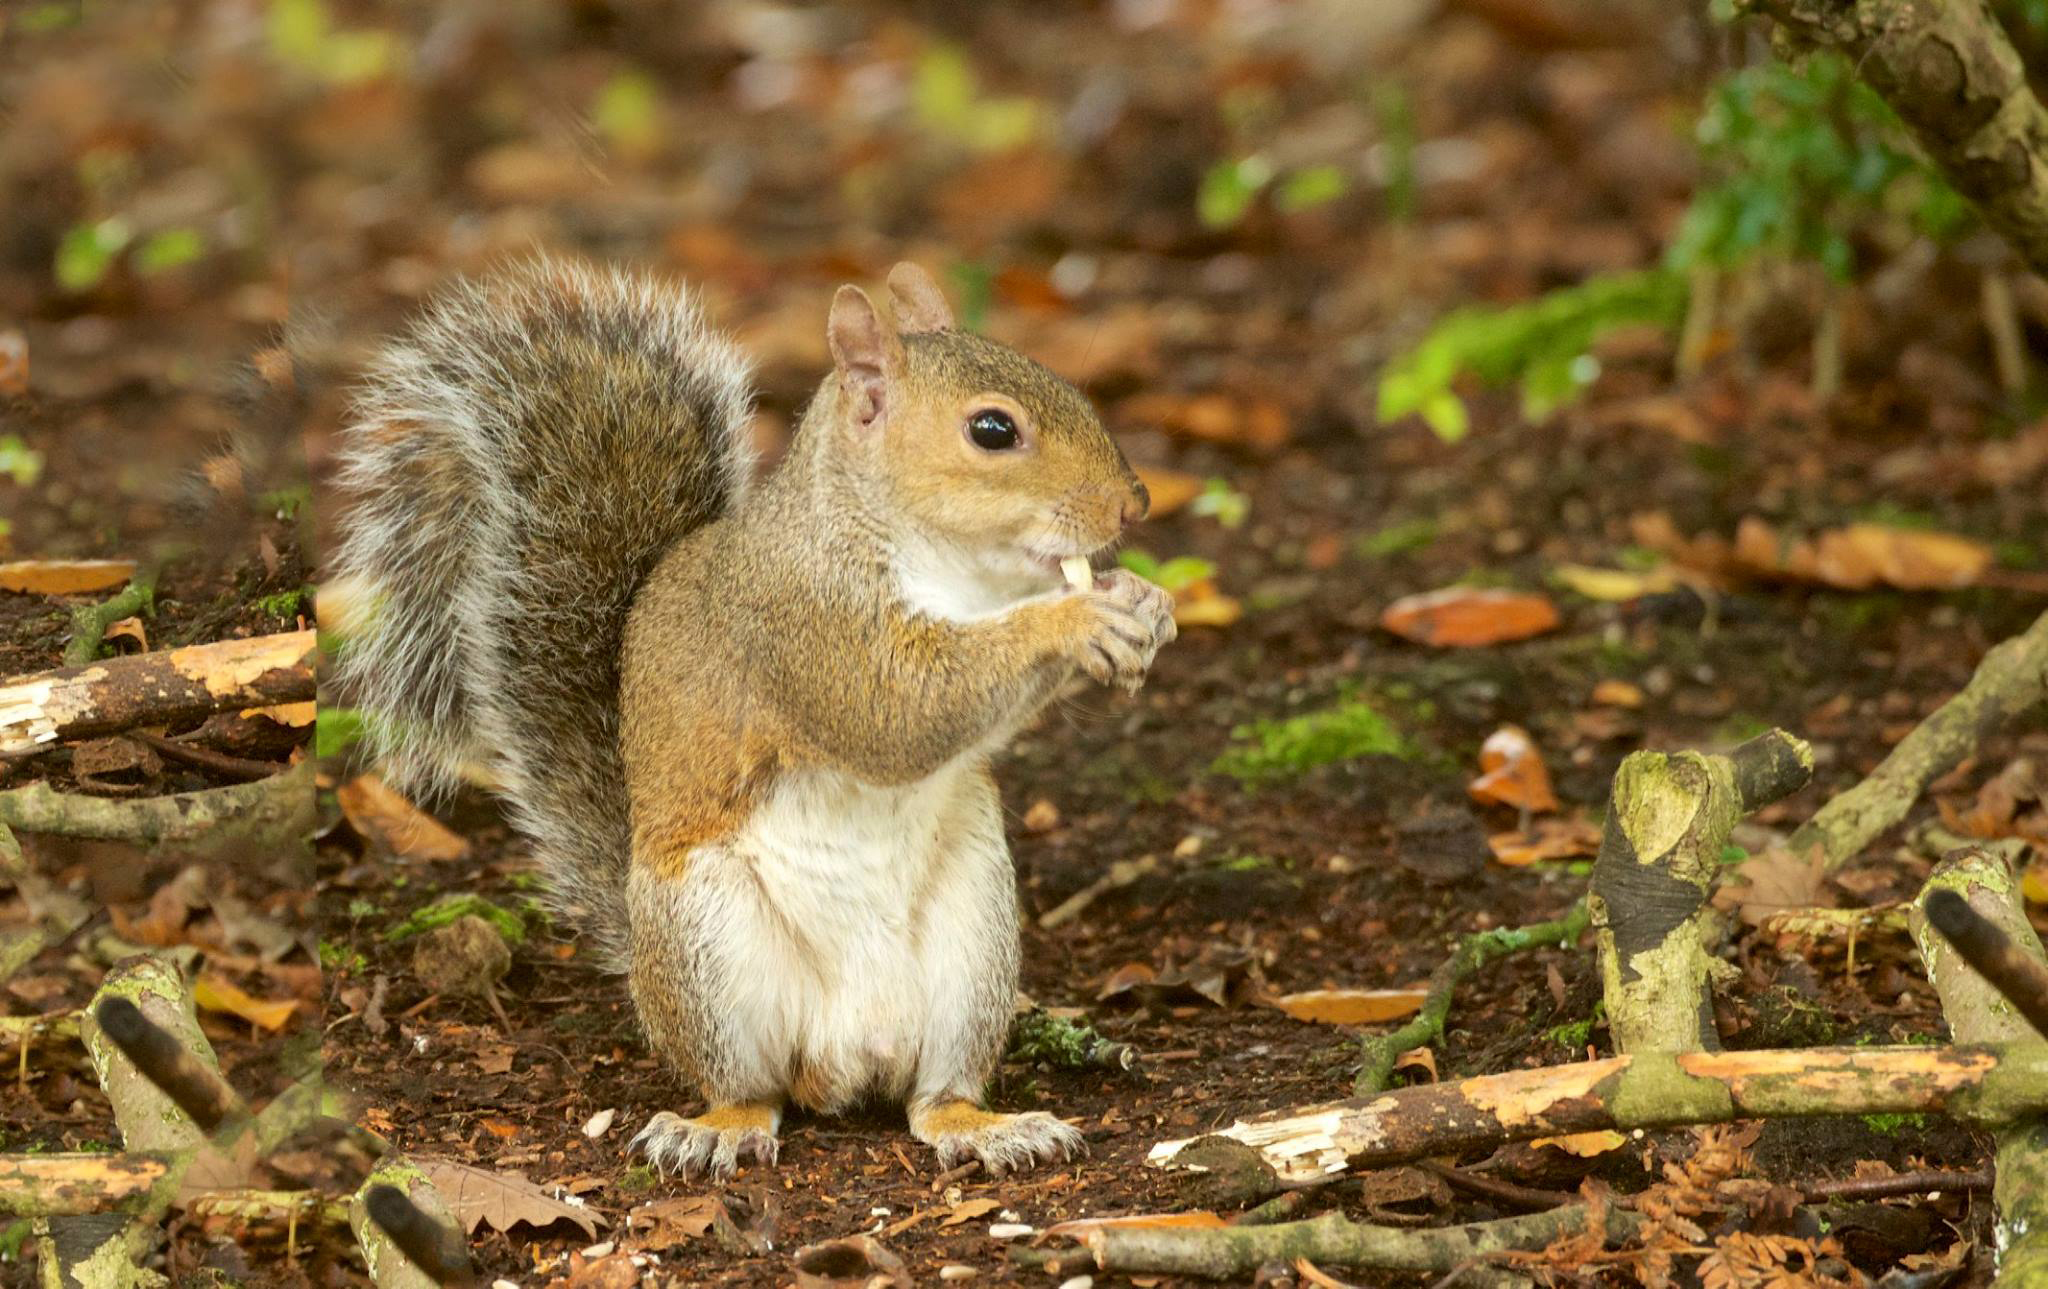 A grey squirrel nibbles on a nut.